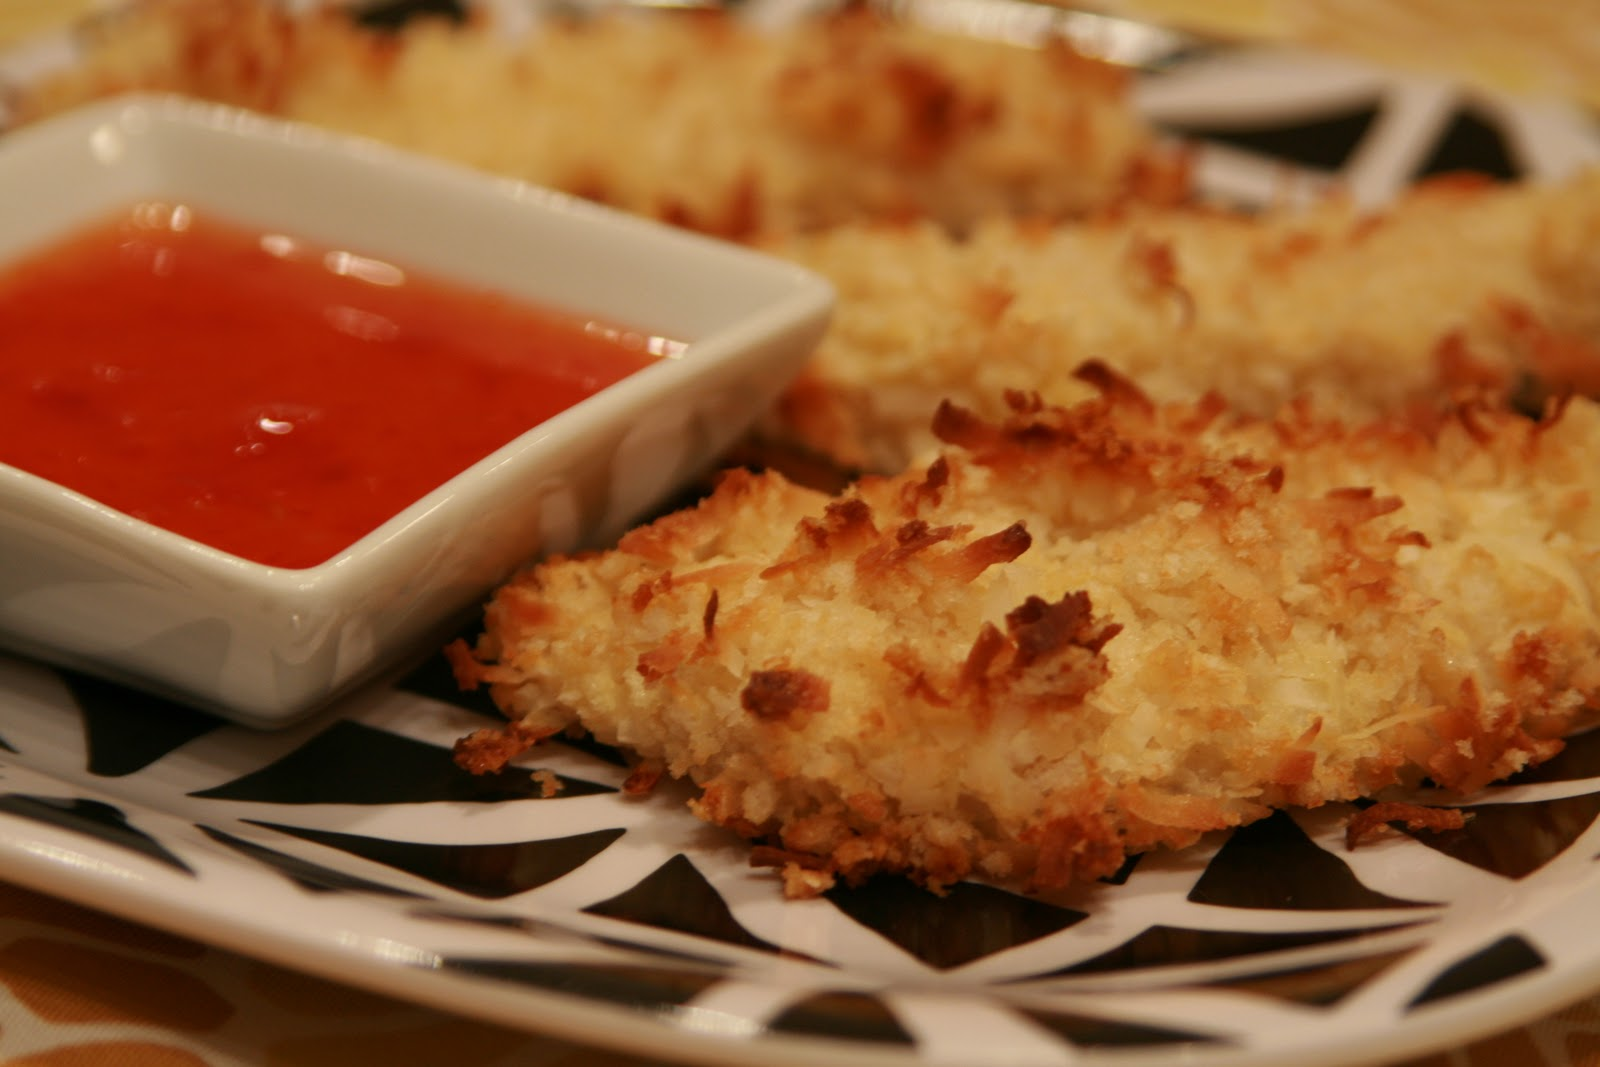 ... Bake & Decorate: Baked Coconut Chicken Tenders w/a Sweet Chili Sauce